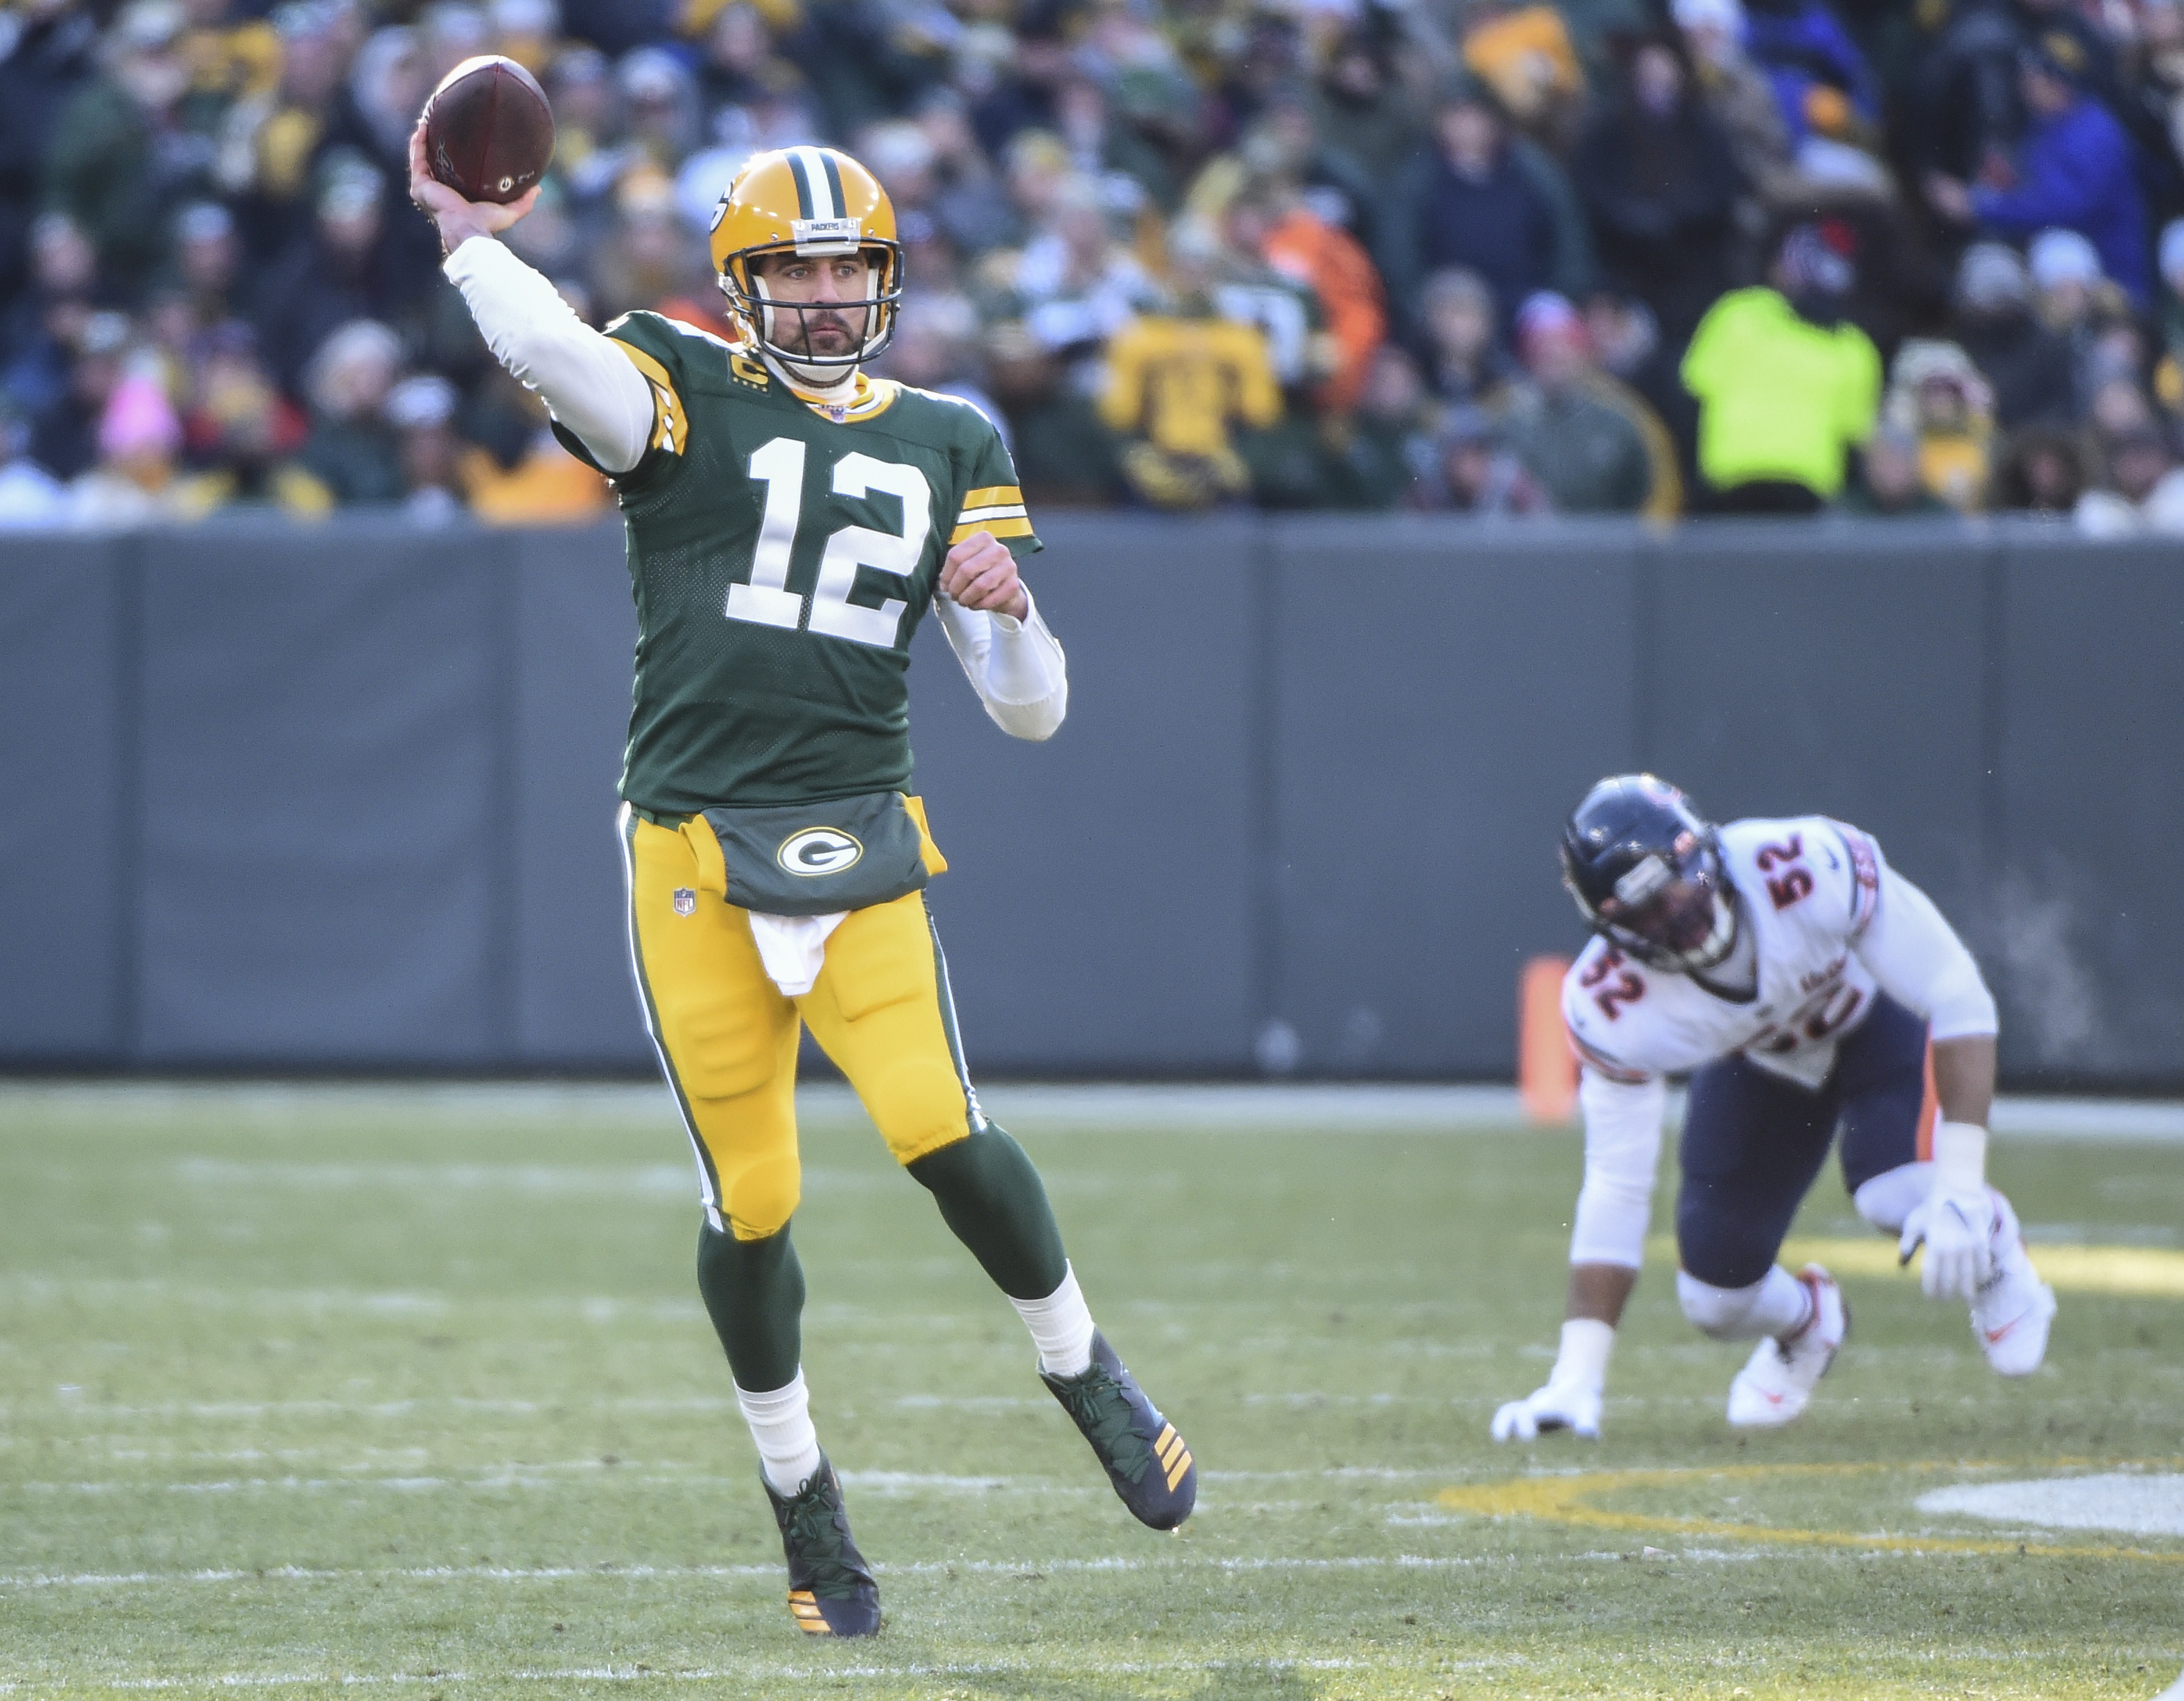 Ranking the Packers Remaining Games from Easiest to Hardest